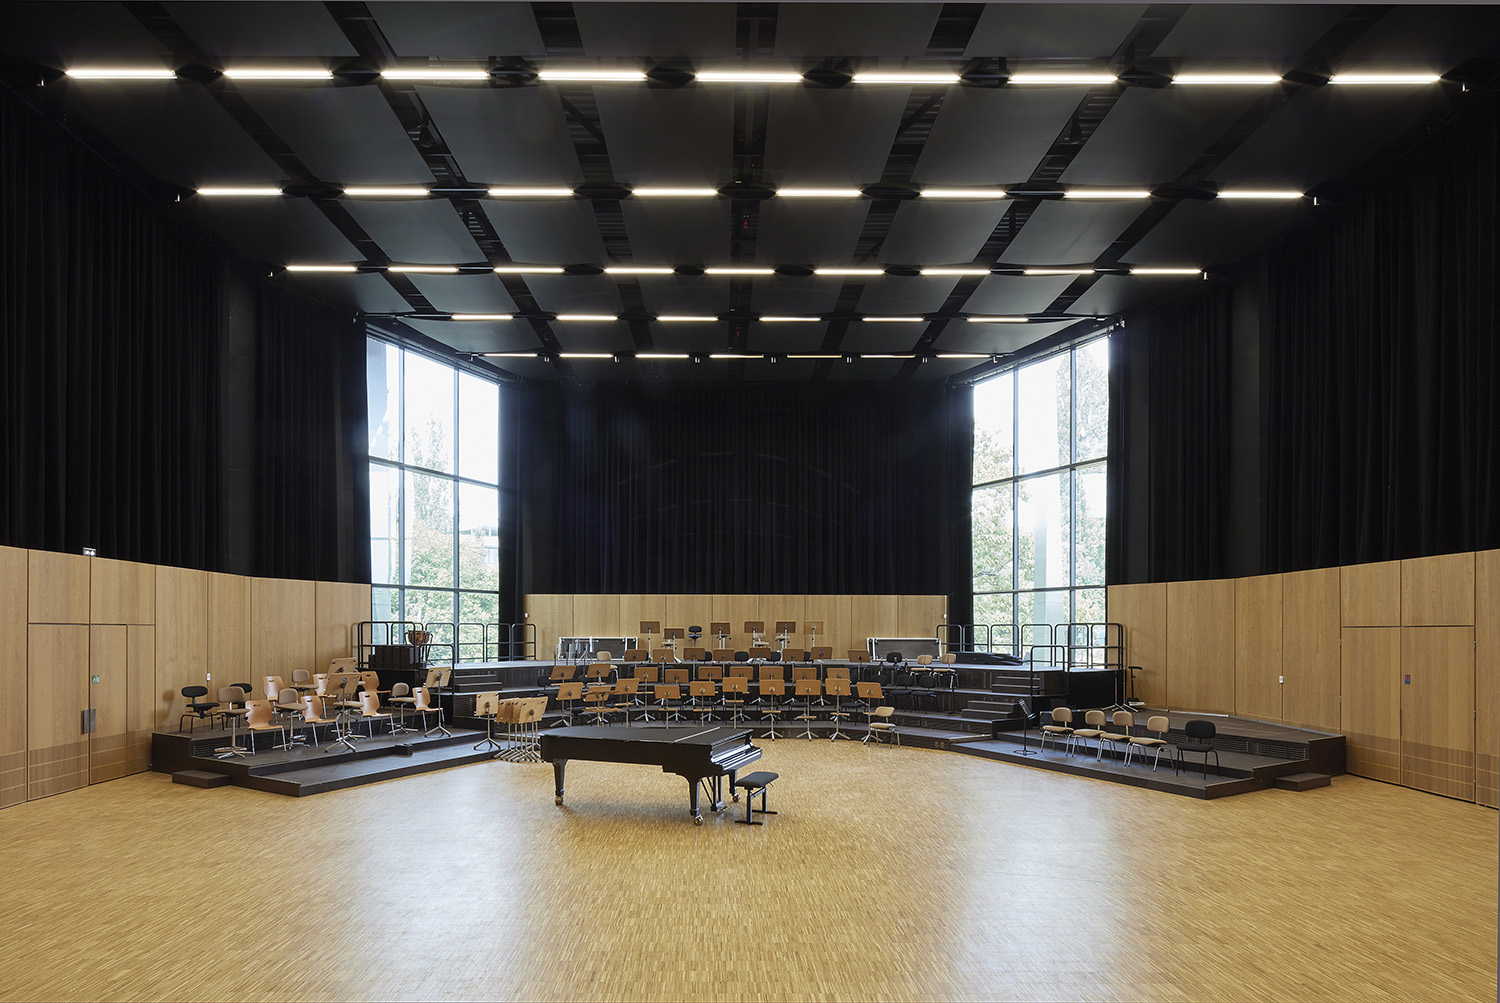 Rehearsal room of the Strasbourg Philharmonic orchestra